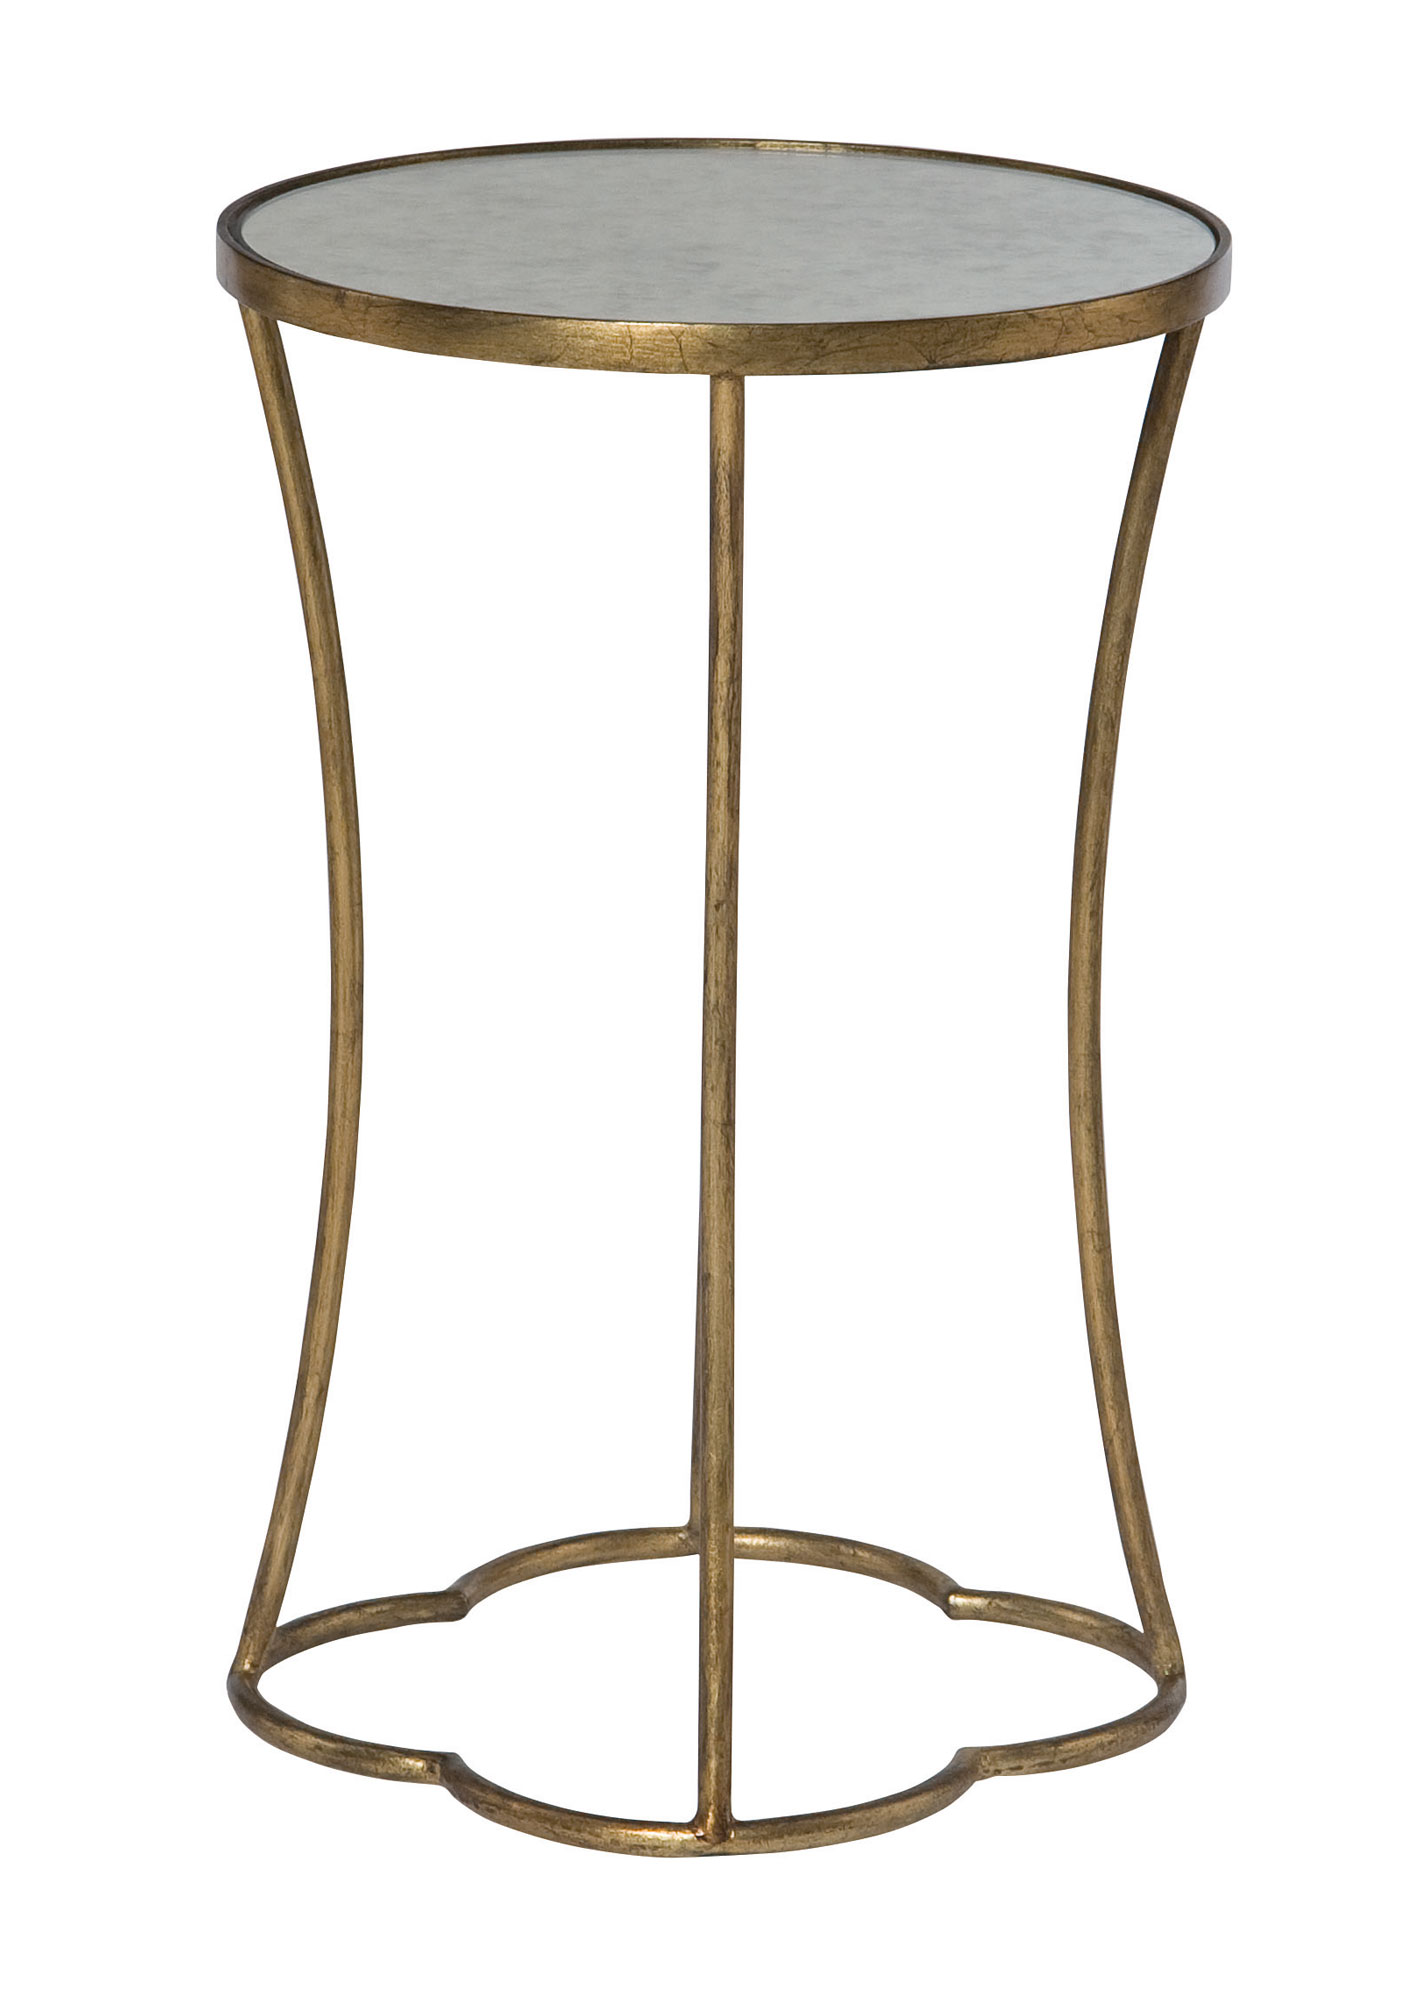 round accent table bernhardt gold yellow decor iron coffee legs cherry and black finish lamp target wood side cocktail linens clear trunk outdoor wicker dining sets clearance